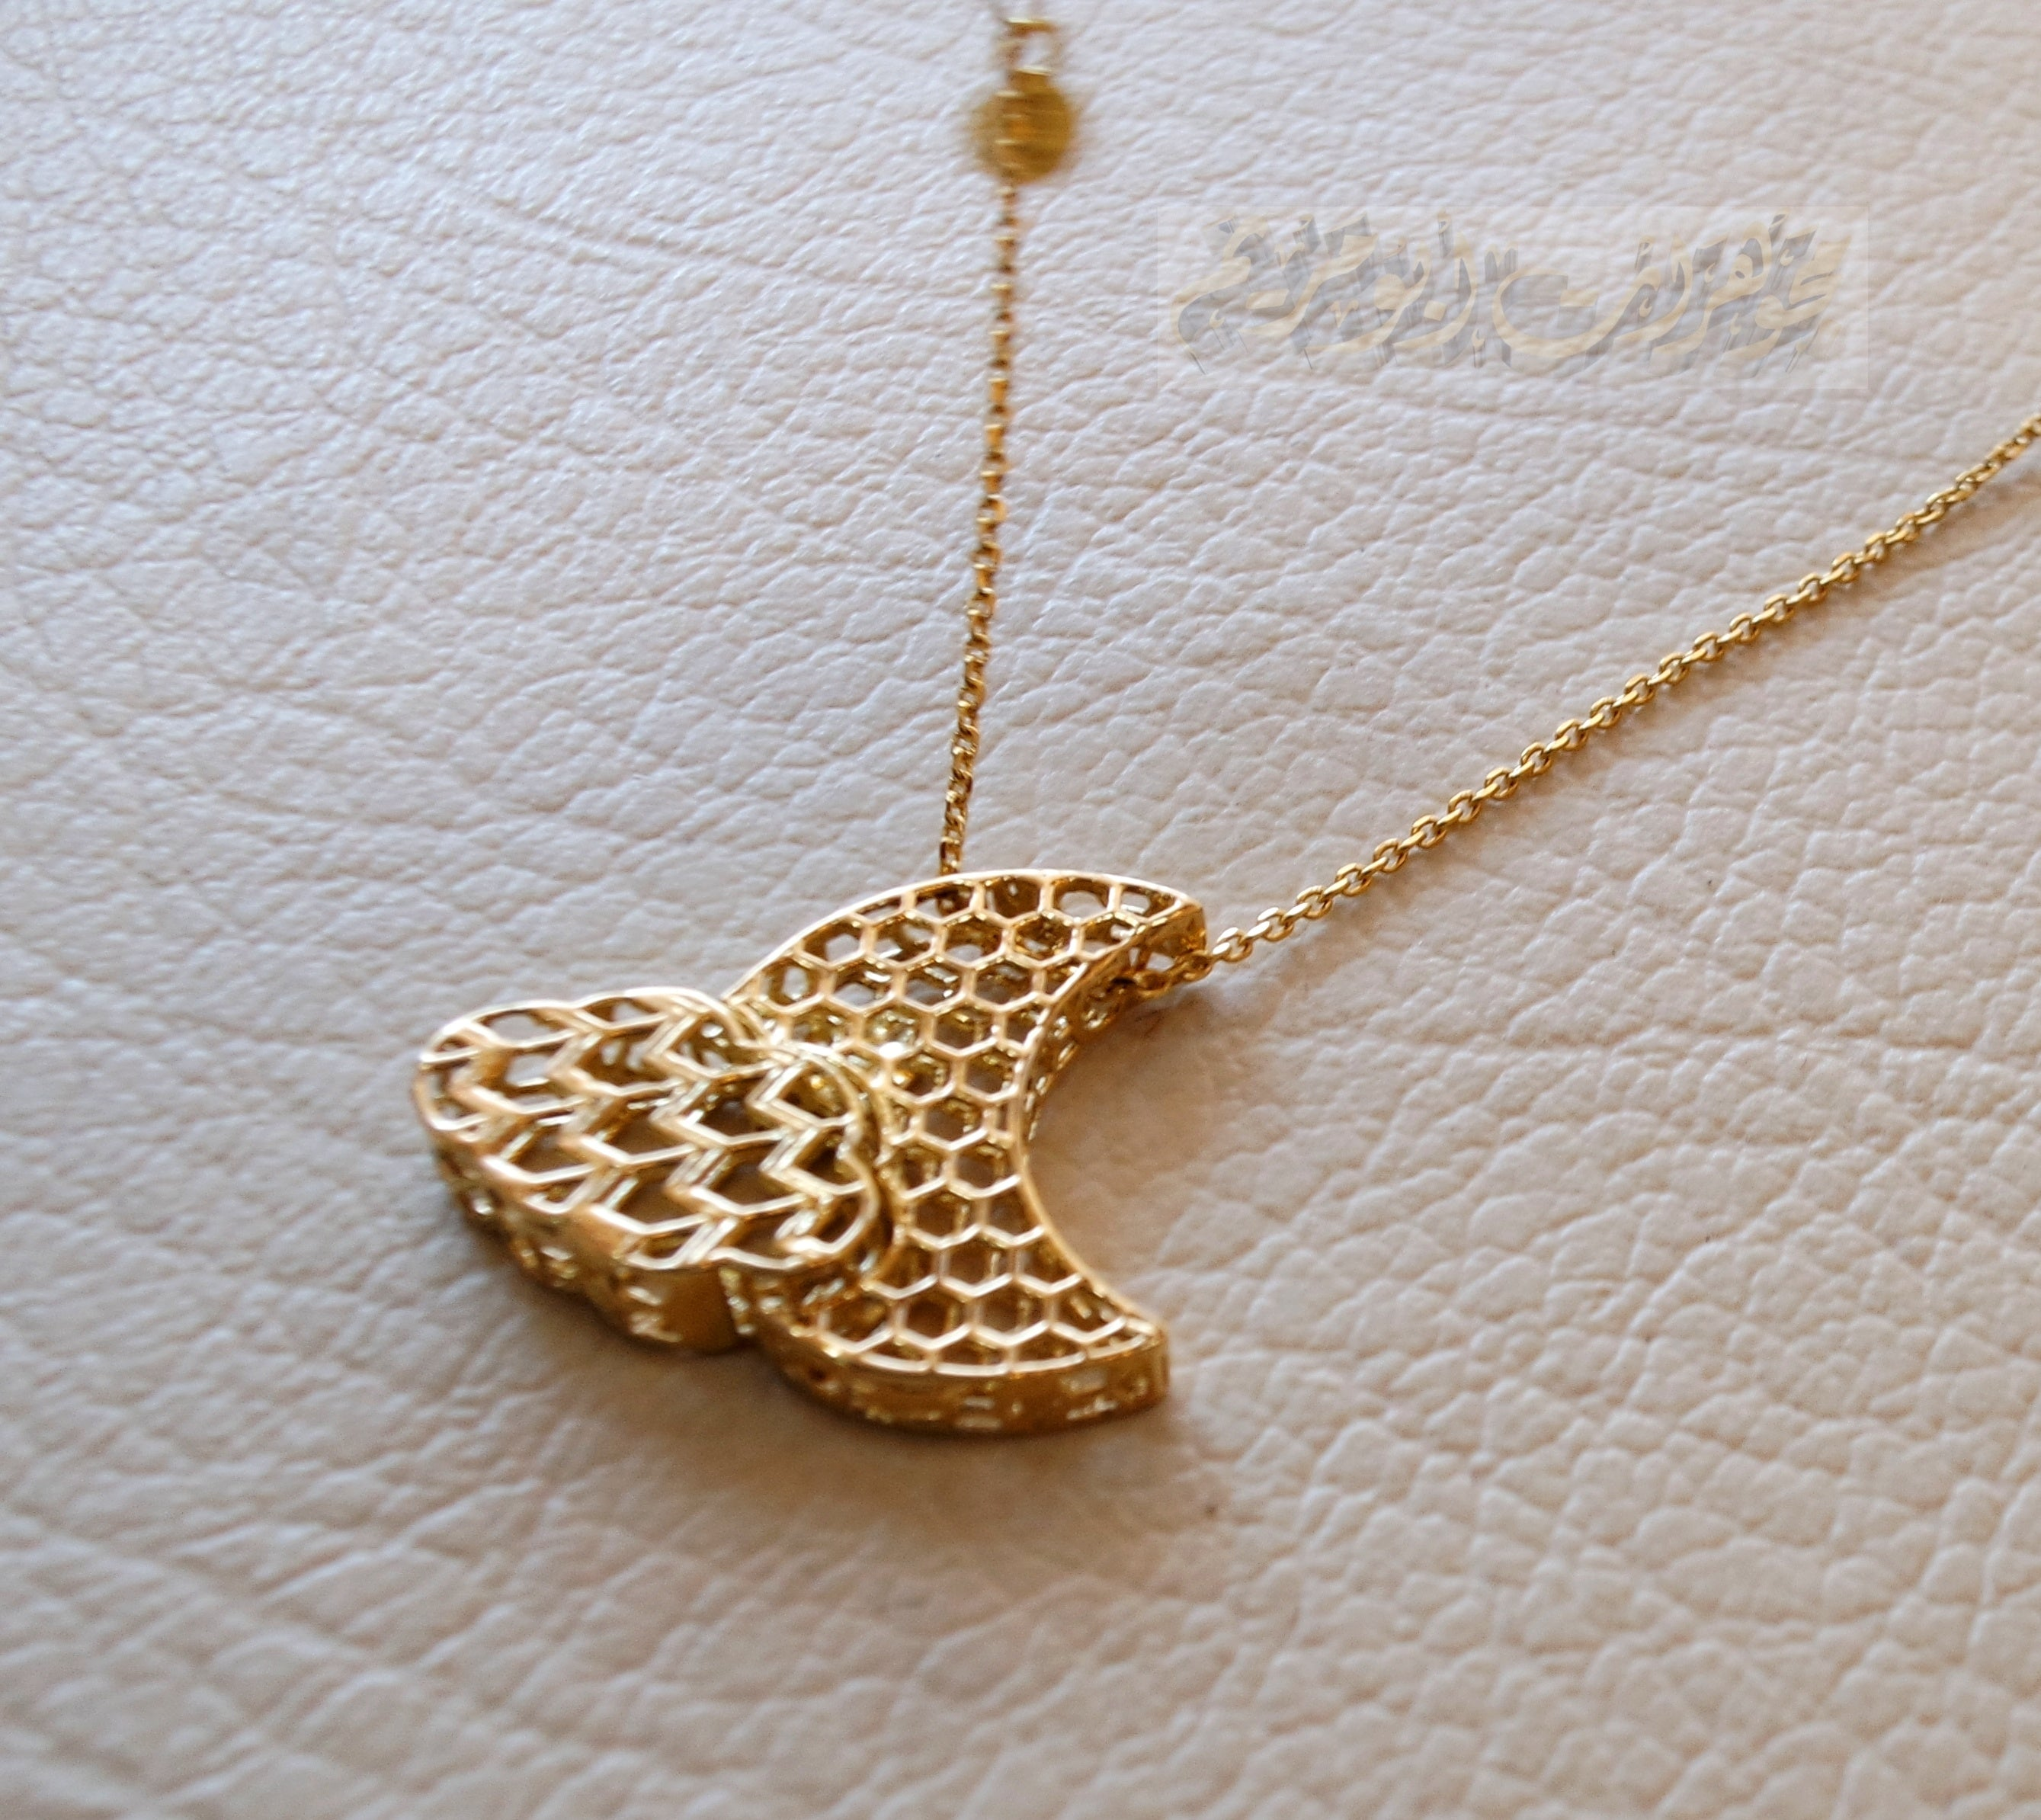 Honeycomb moon and cloud 3d 18K yellow gold necklace pendant and chain fine jewelry full insured shipping